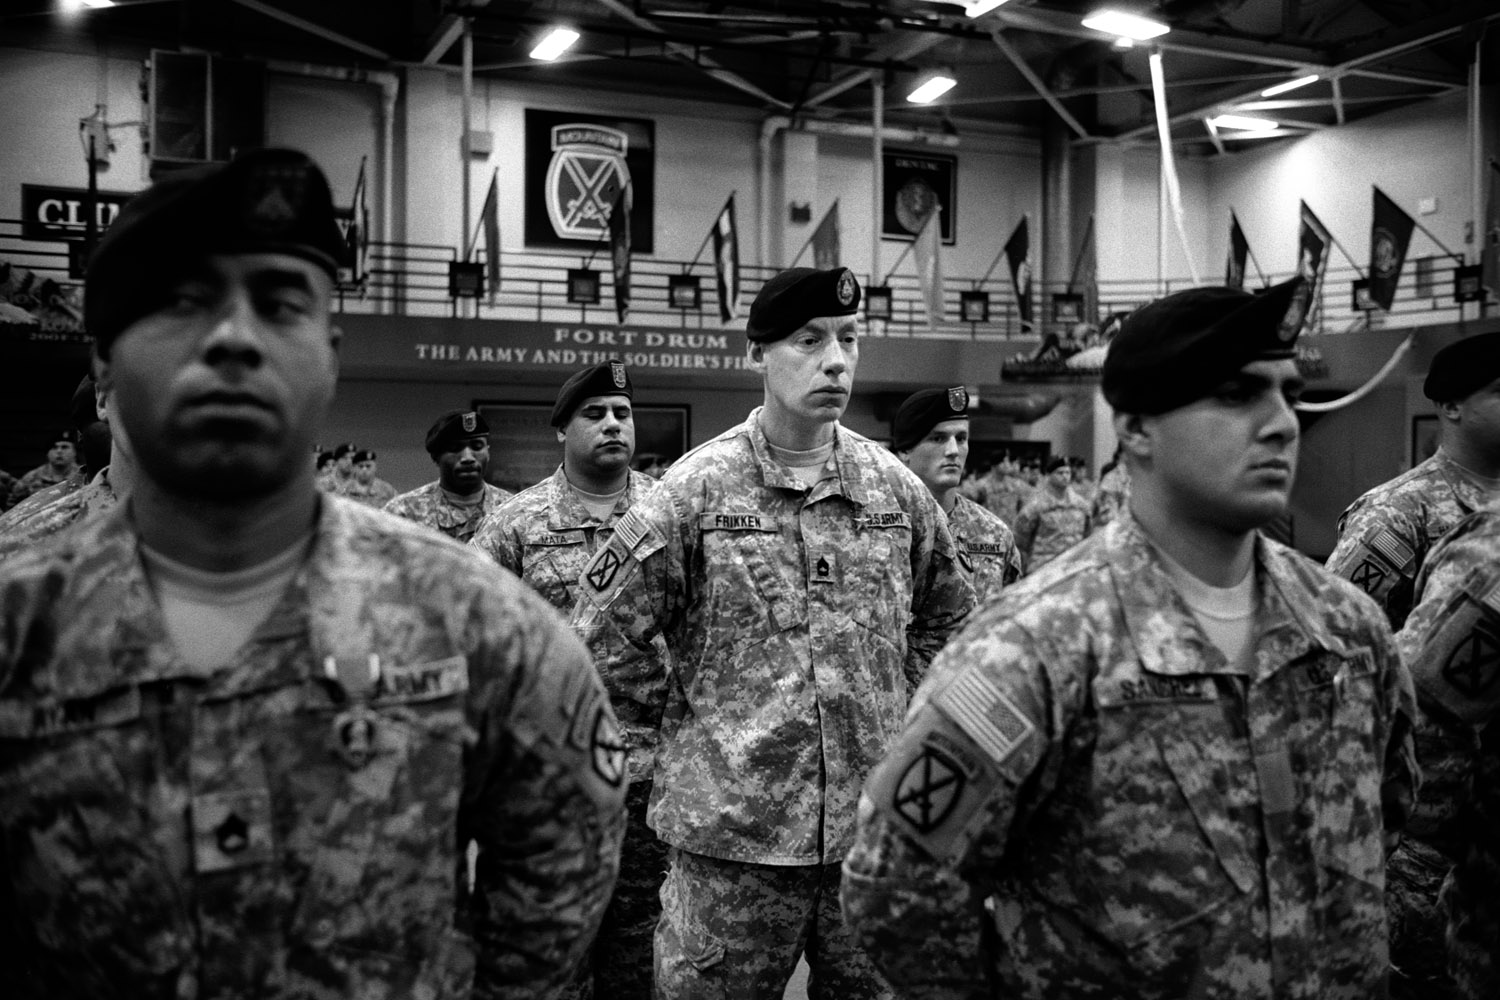 After returning home from a 12-month deployment in Afghanistan, U.S. soldiers from the 10th Mountain Division receive awards for  valor at the MaGrath Gym in Fort Drum, N.Y.  January 2010.